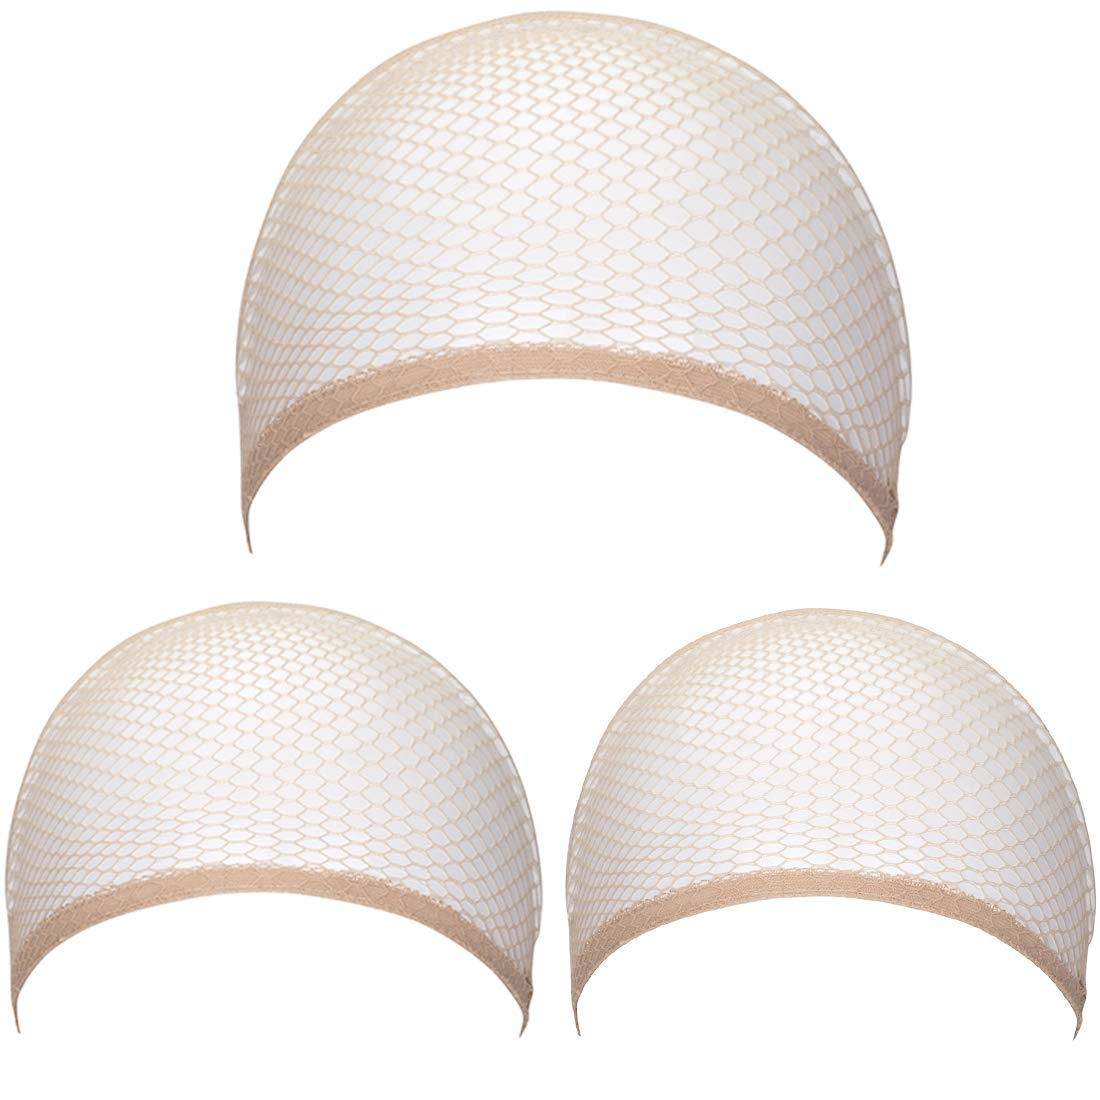 3 Pack Nylon Hair Net Wig Caps Stretchable Net Mesh Fishnet Elastic Snood Cap(Skin) by FOCUSSEXY (Image #1)